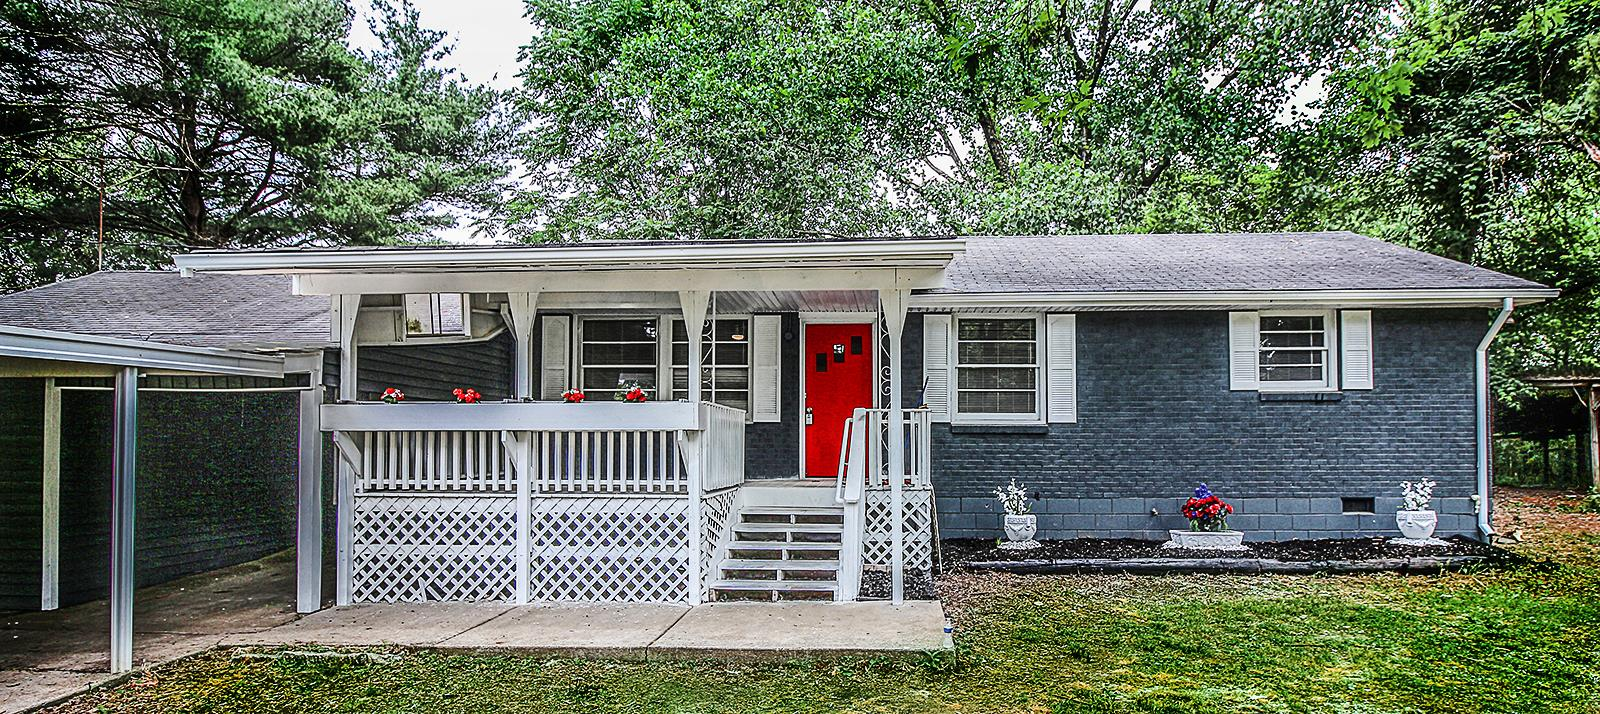 4772 Arnold Dr, Murfreesboro in Rutherford County County, TN 37129 Home for Sale